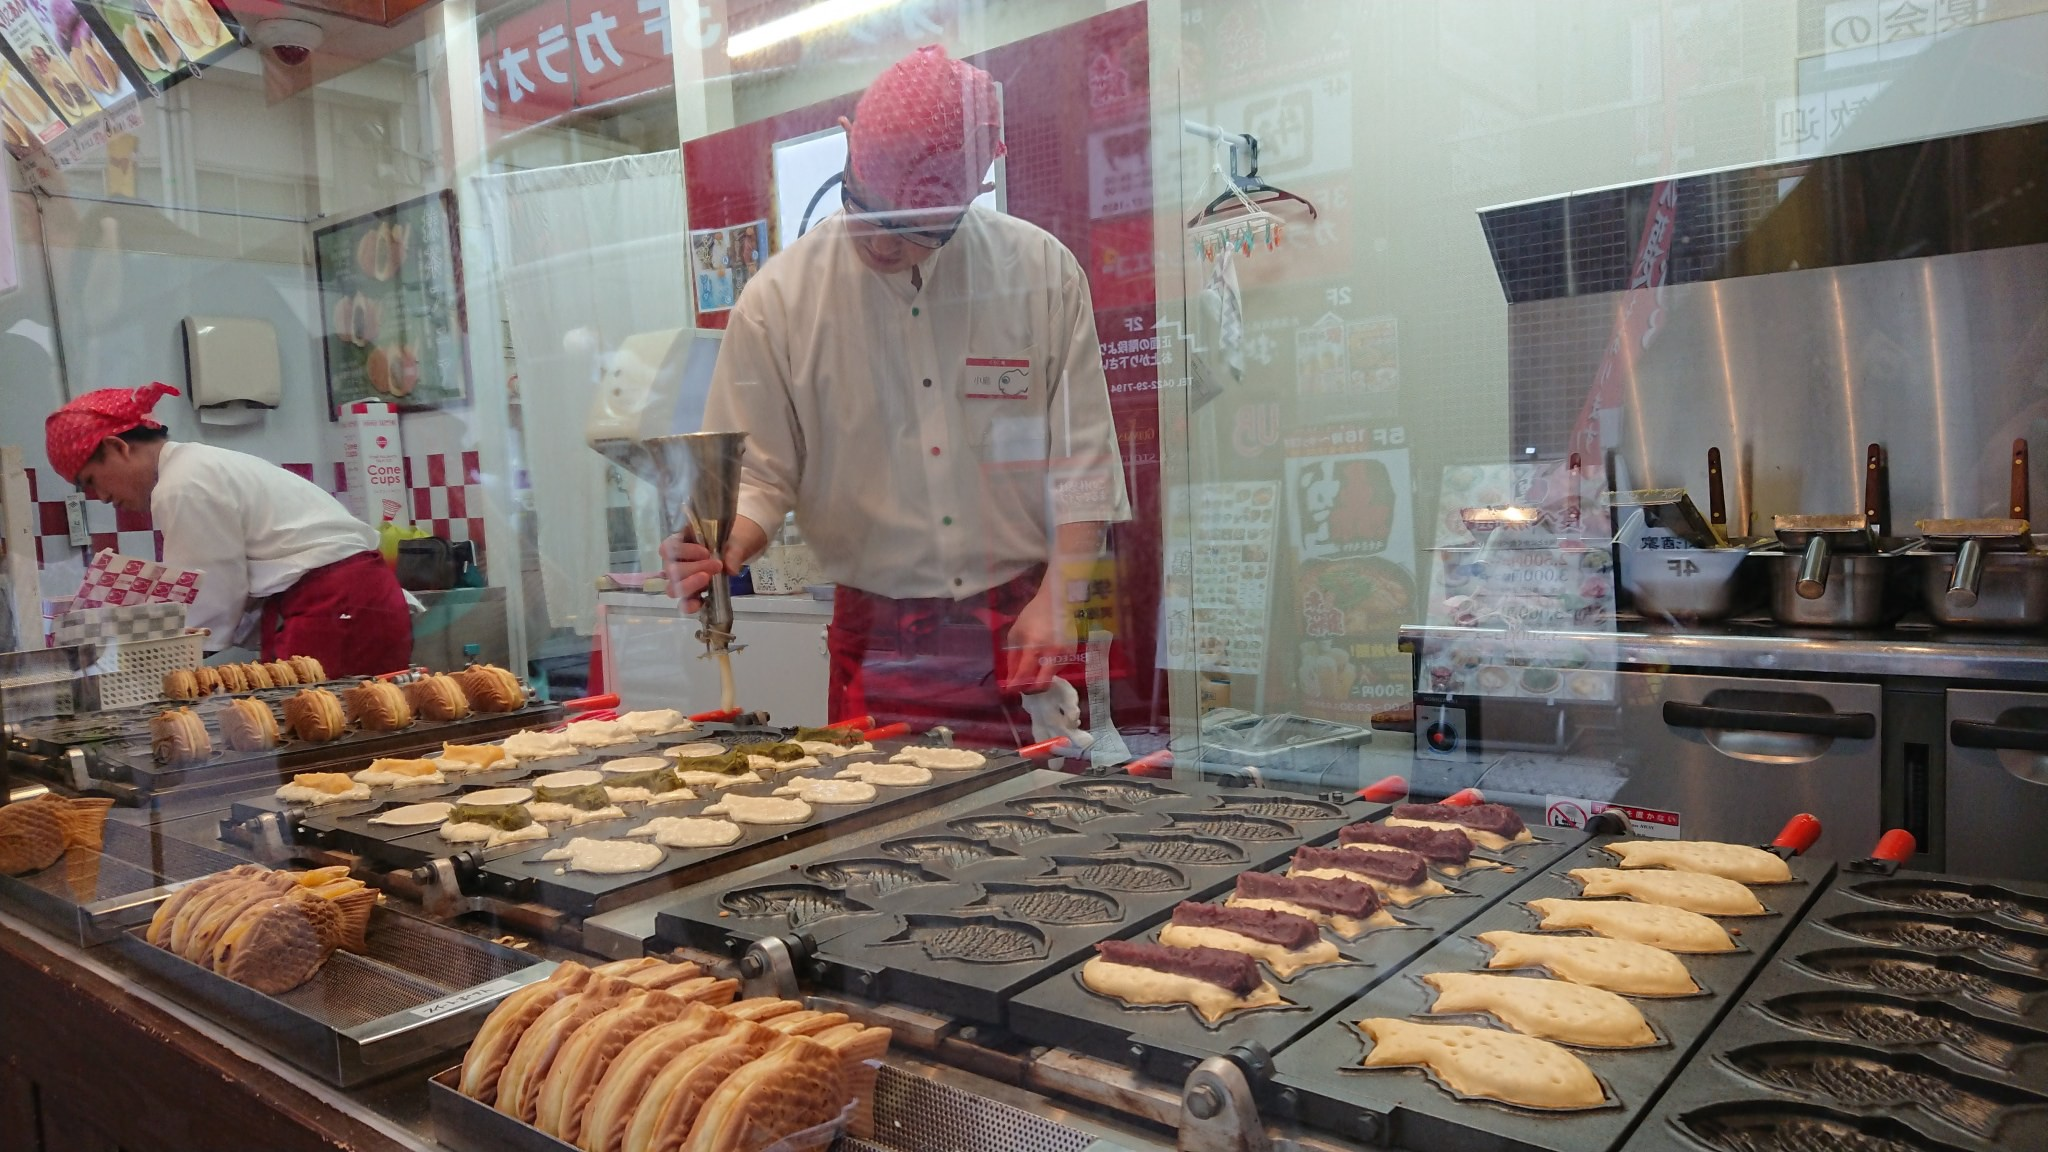 Through a glass screen, a taiyaki-maker adds some finishing touches to a large tray of the stuff.